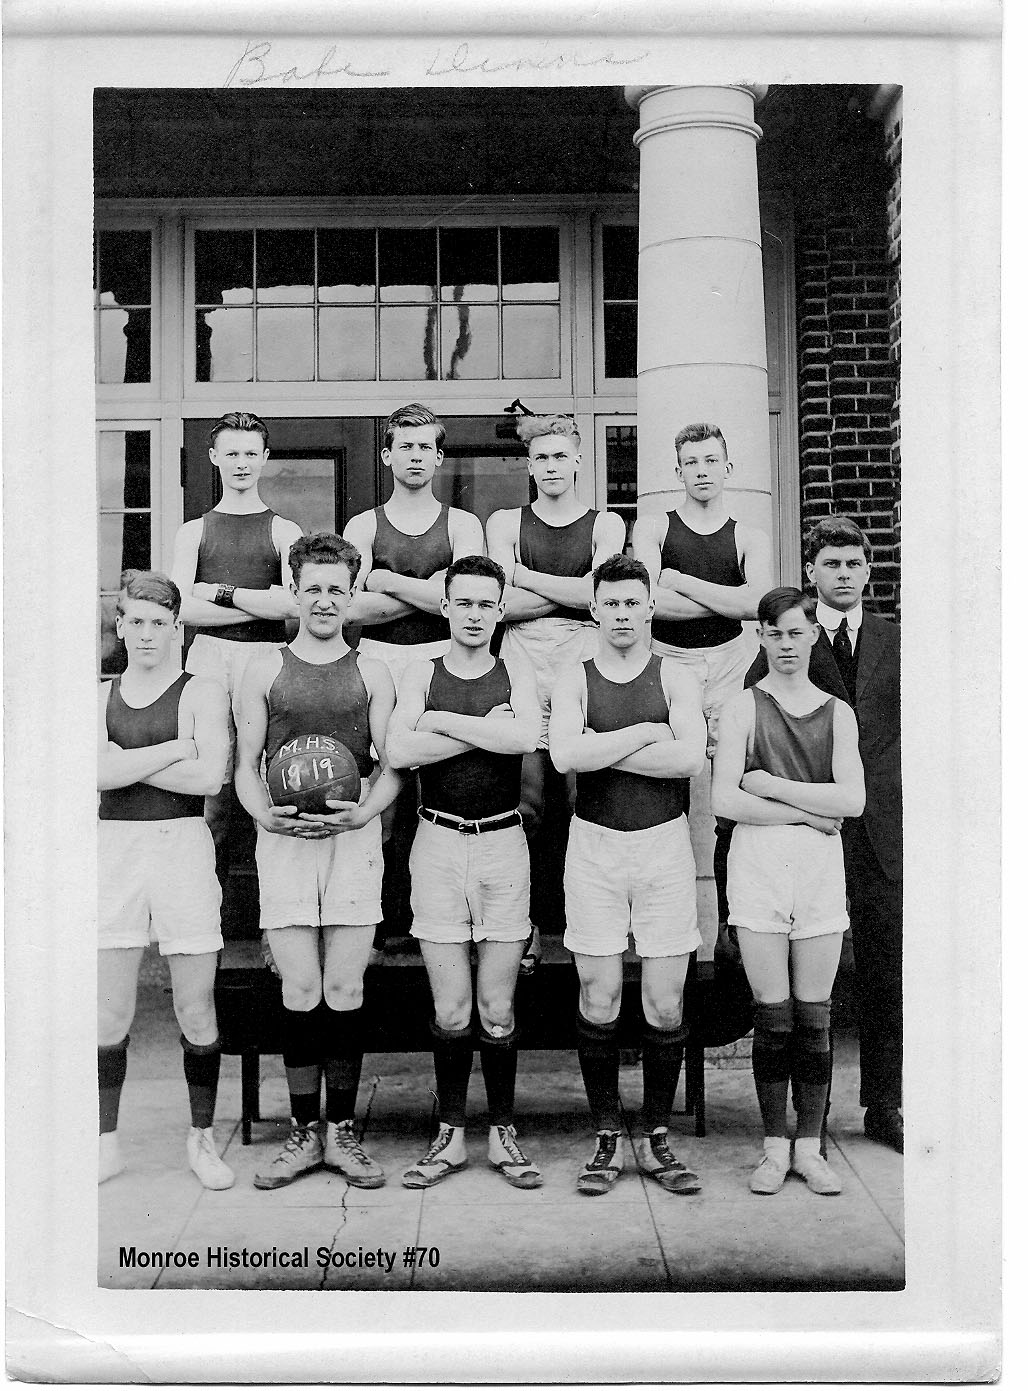 0070 – Monroe High School 1919 Basketball Team